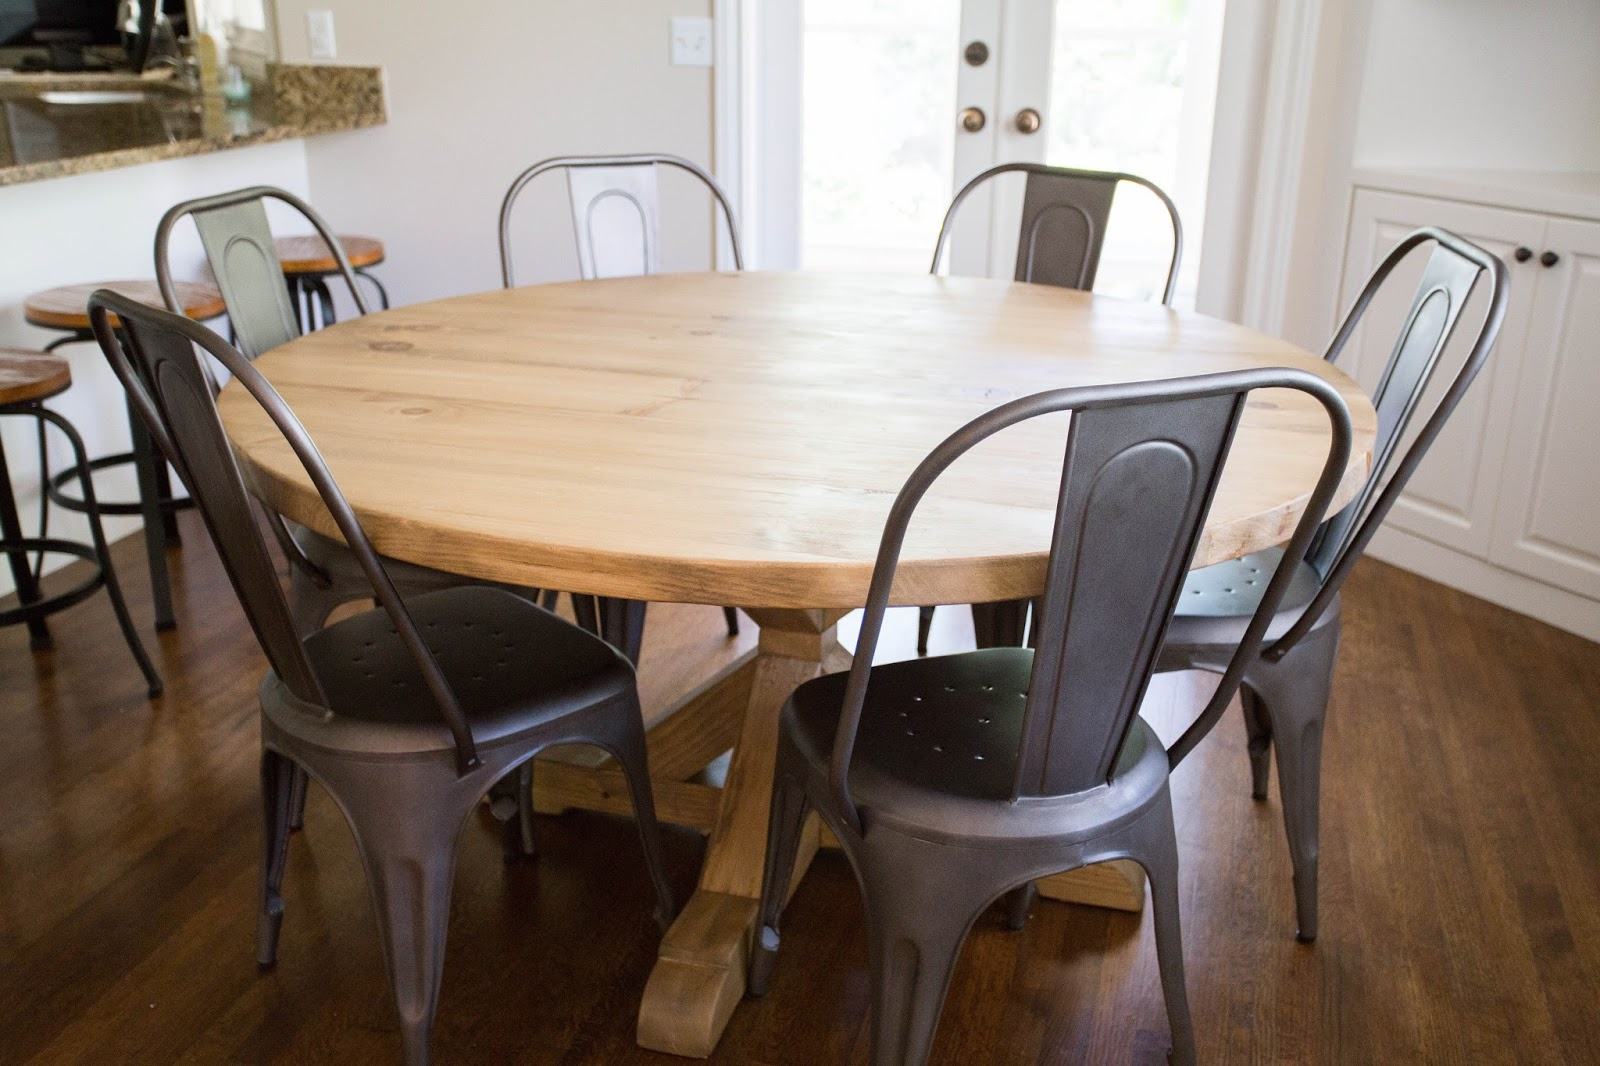 Diy Round Dining Table Plans Do It Yourself Divas Diy Round Restoration Hardware Table